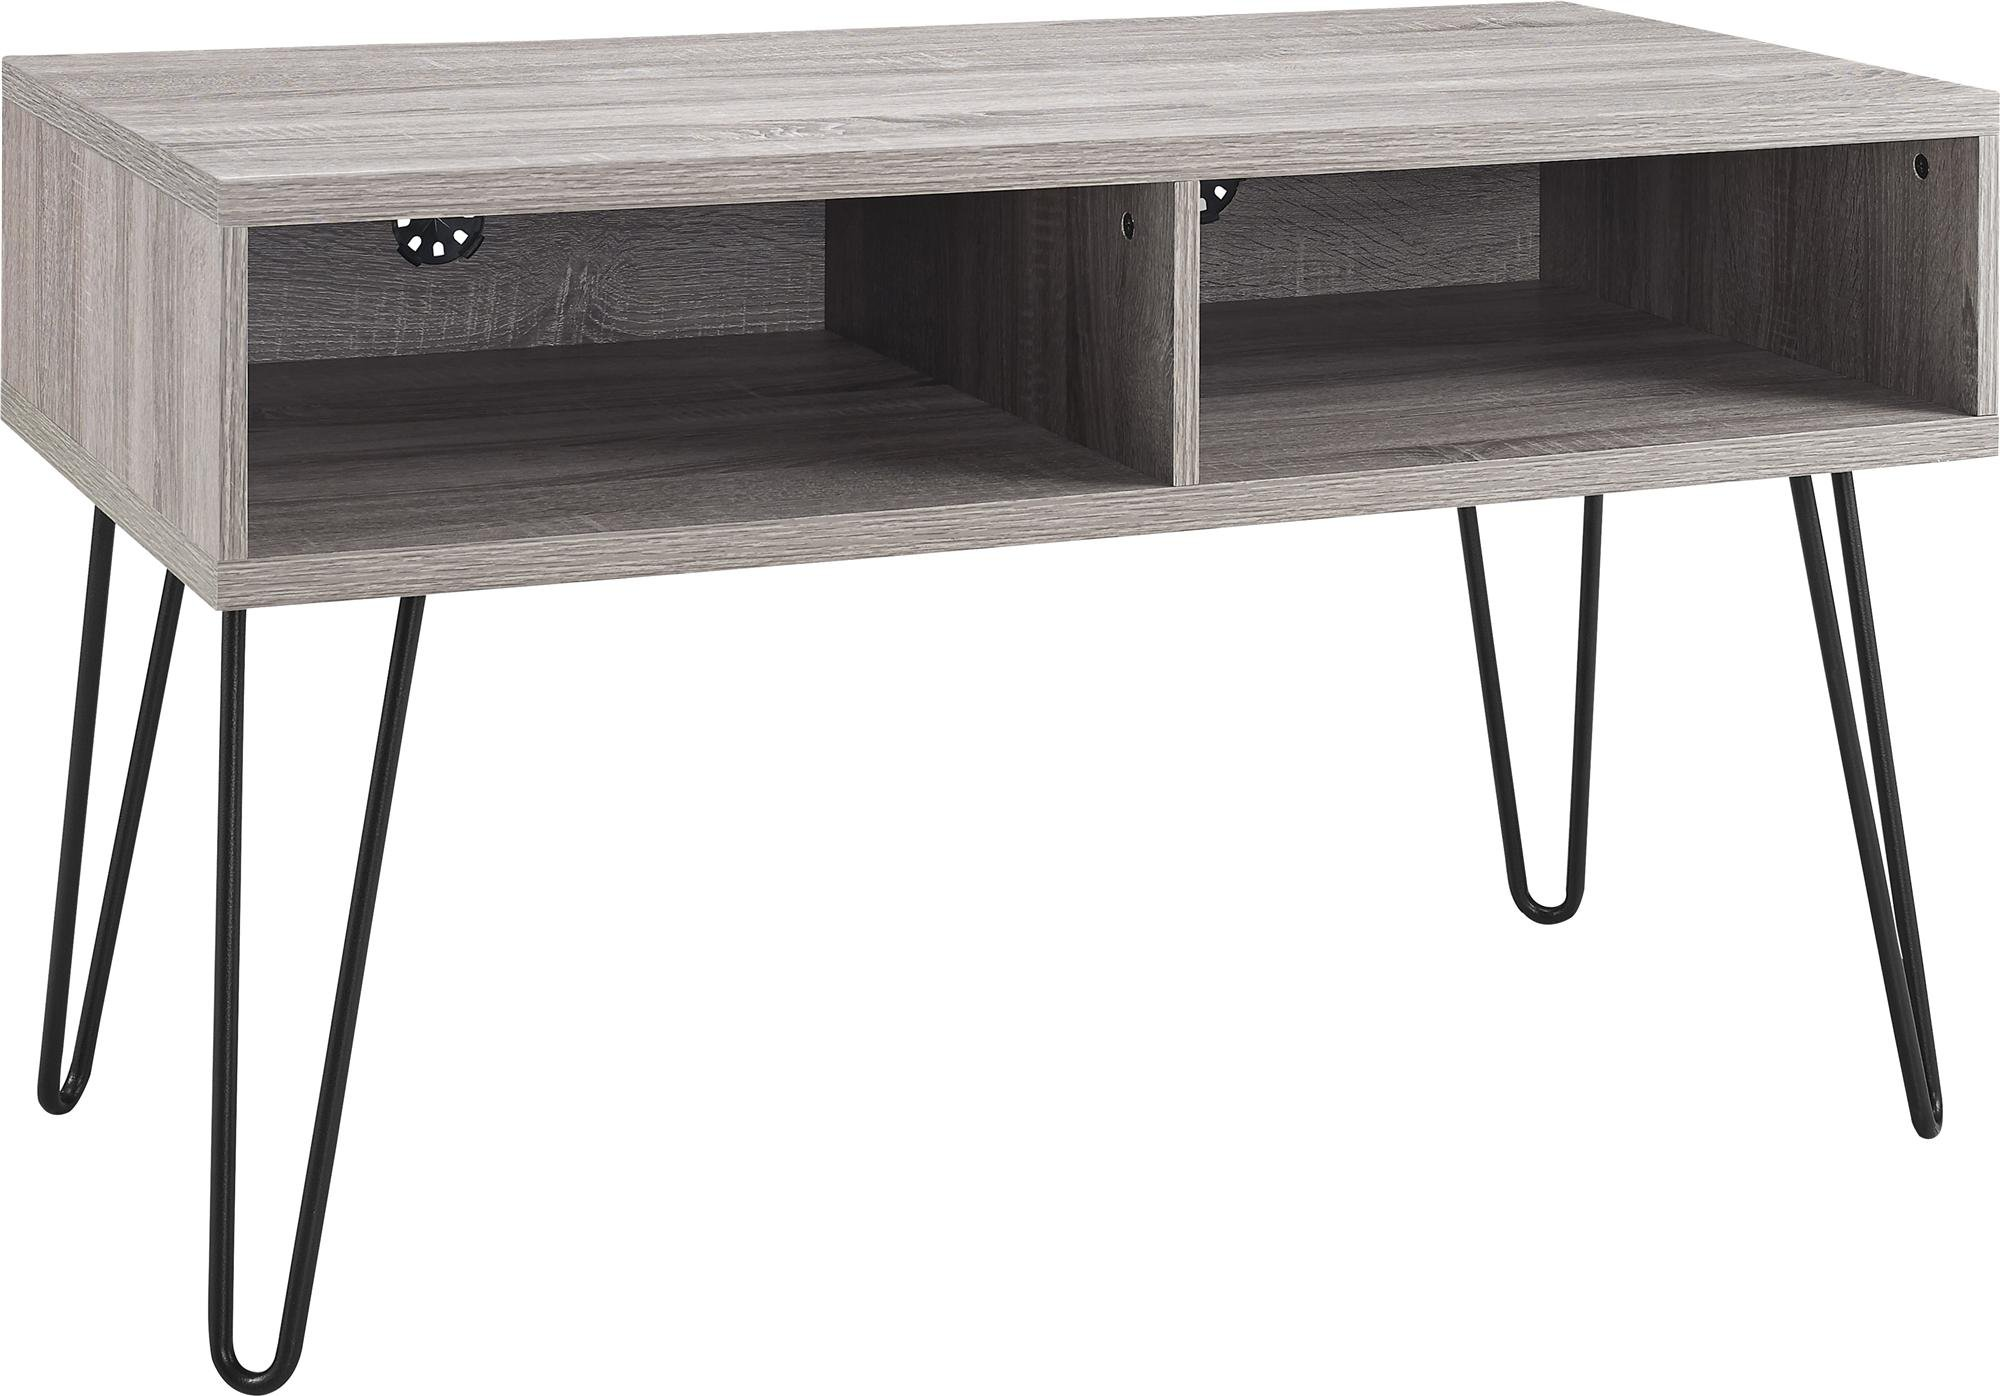 Ameriwood Home Owen Retro TV Stand for TVs up to 42'', Weathered Oak